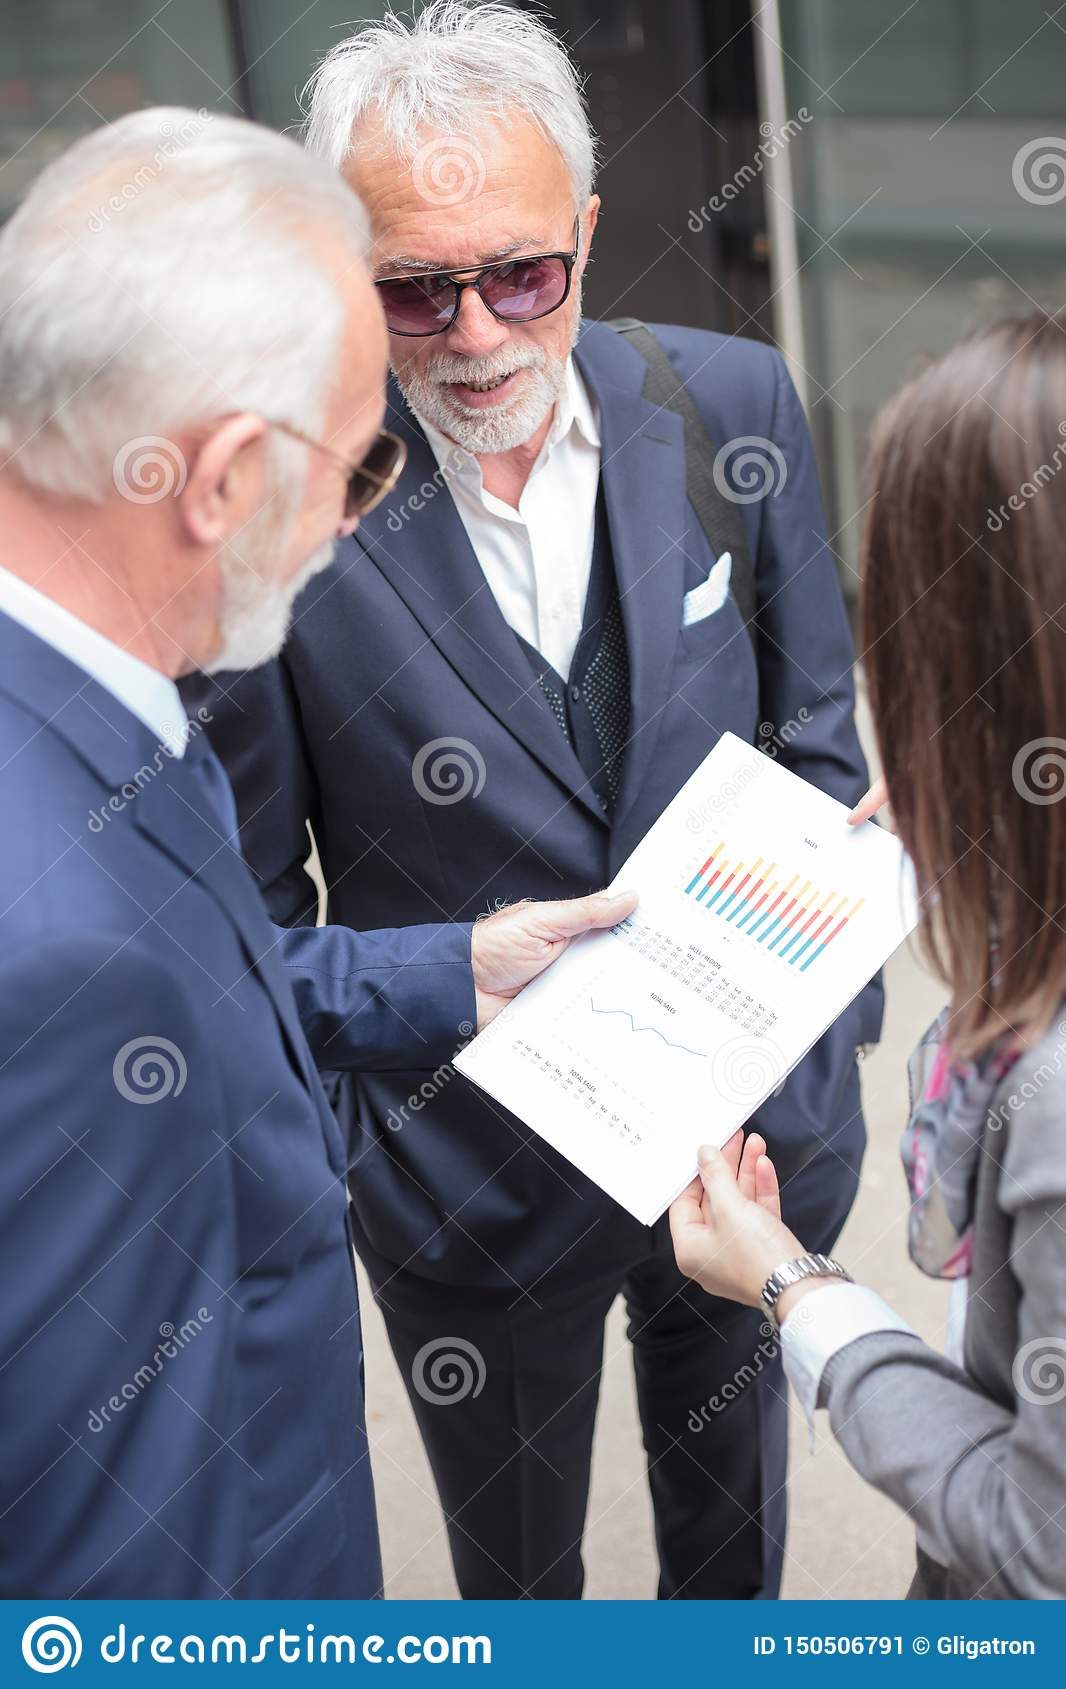 Small group of business people meeting in the street outside of an office building, looking at sales reports